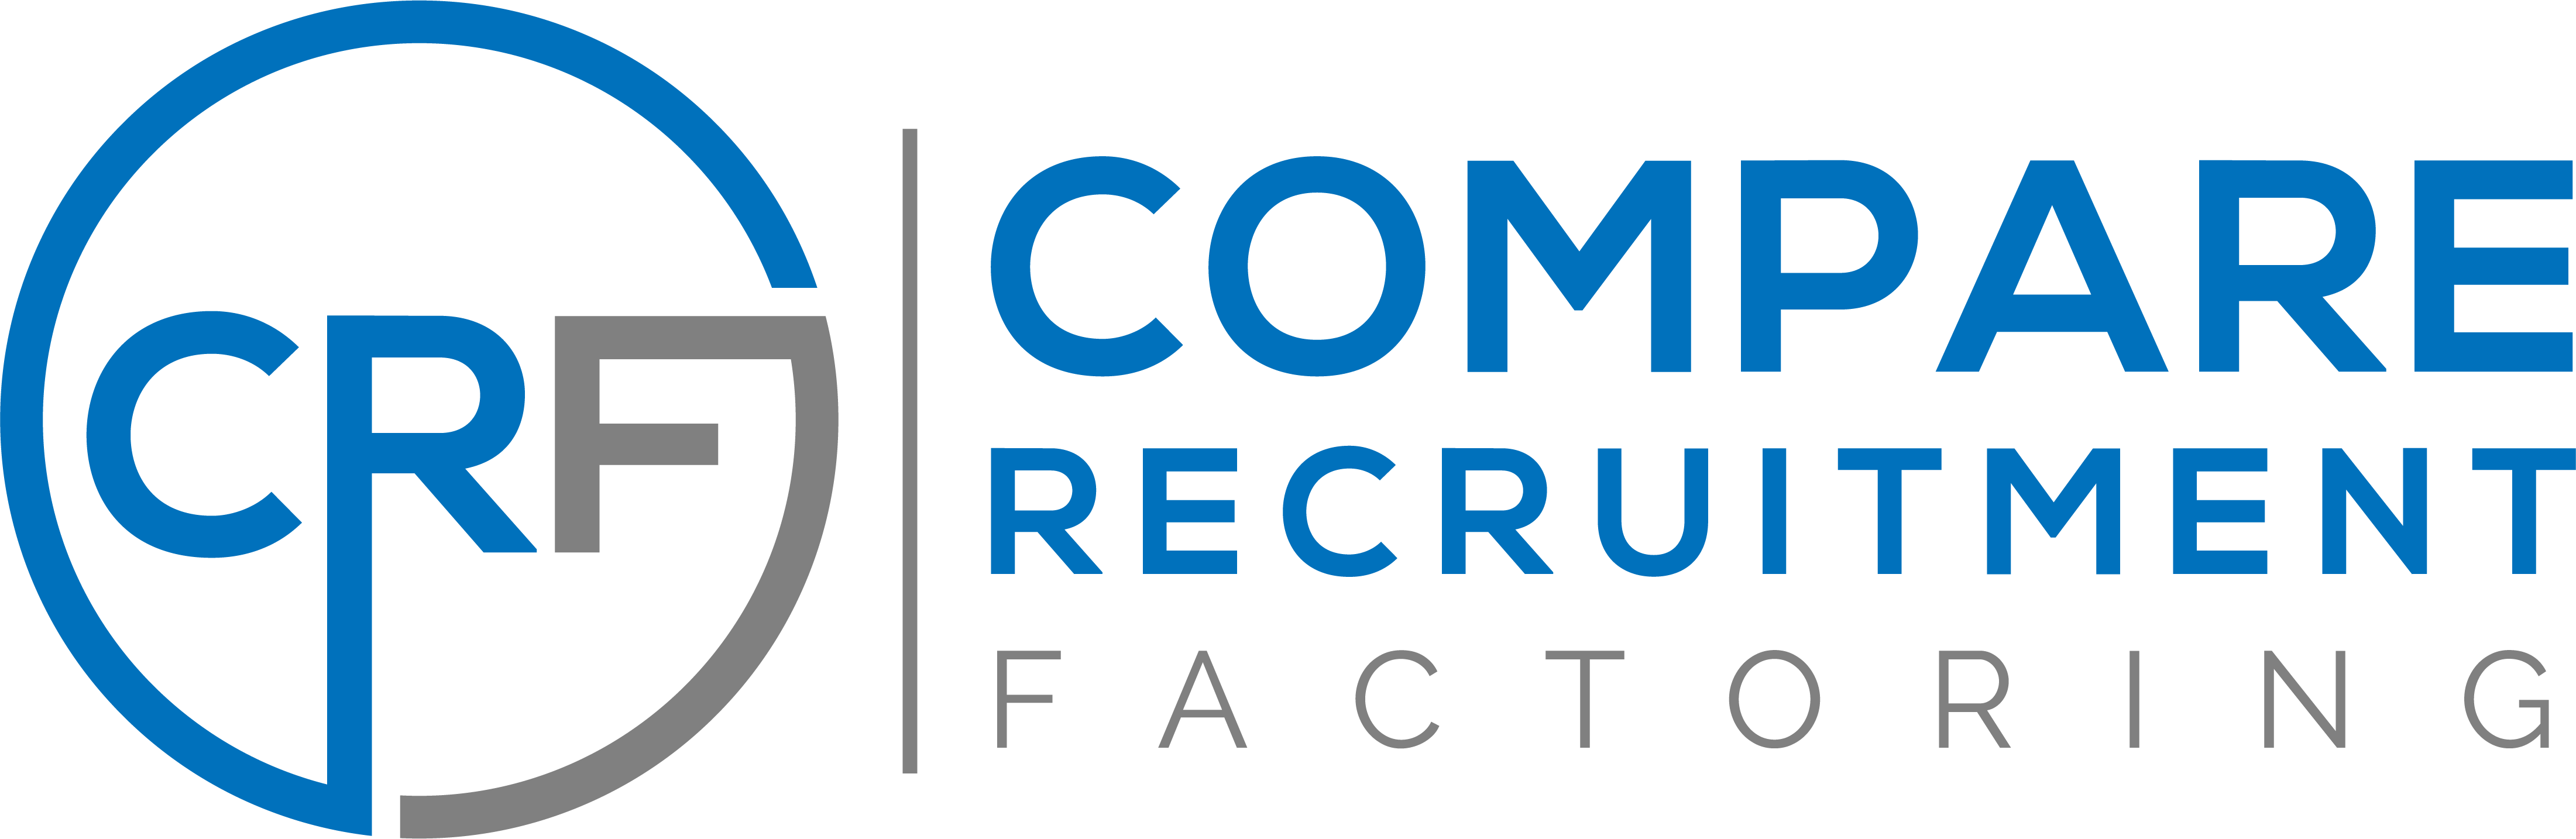 Compare Recruitment Factoring - UK Specialist Factoring for Recruitment Agencies